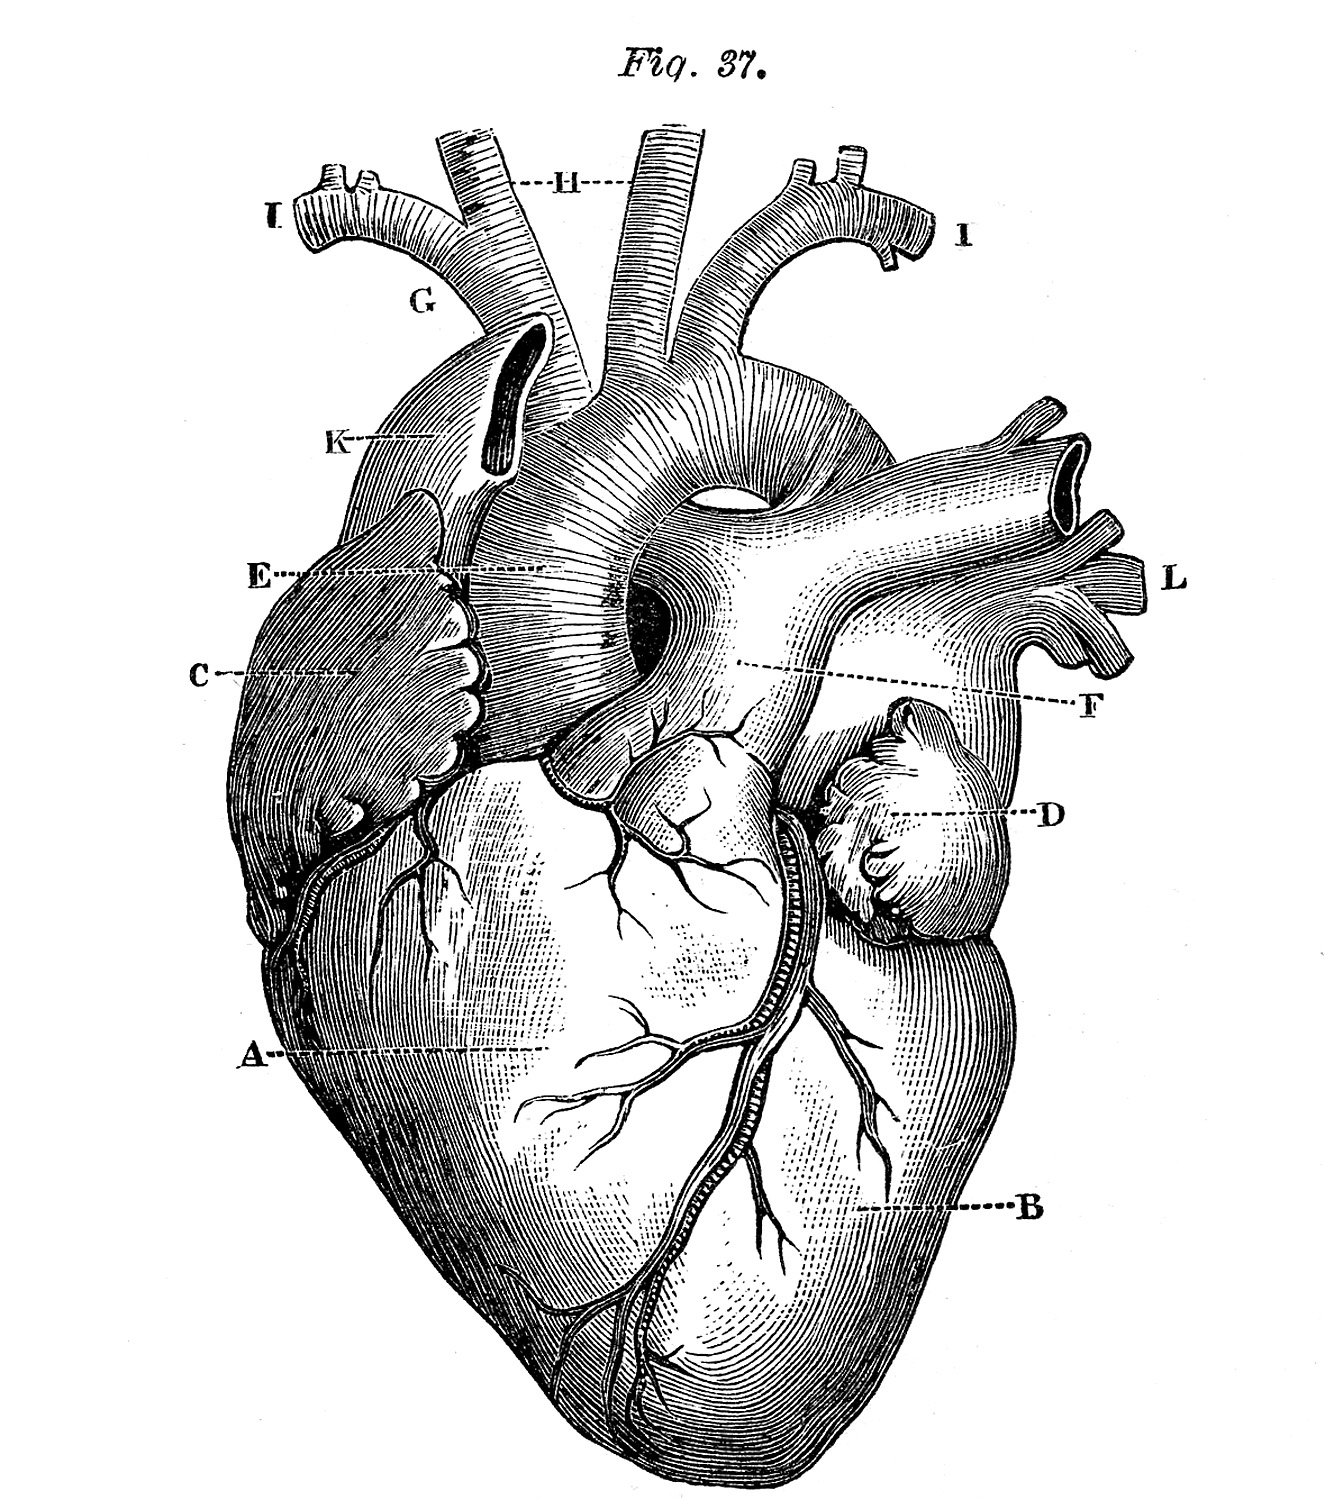 photograph about Printable Heart Diagram called 5 Anatomical Middle Shots! - The Graphics Fairy